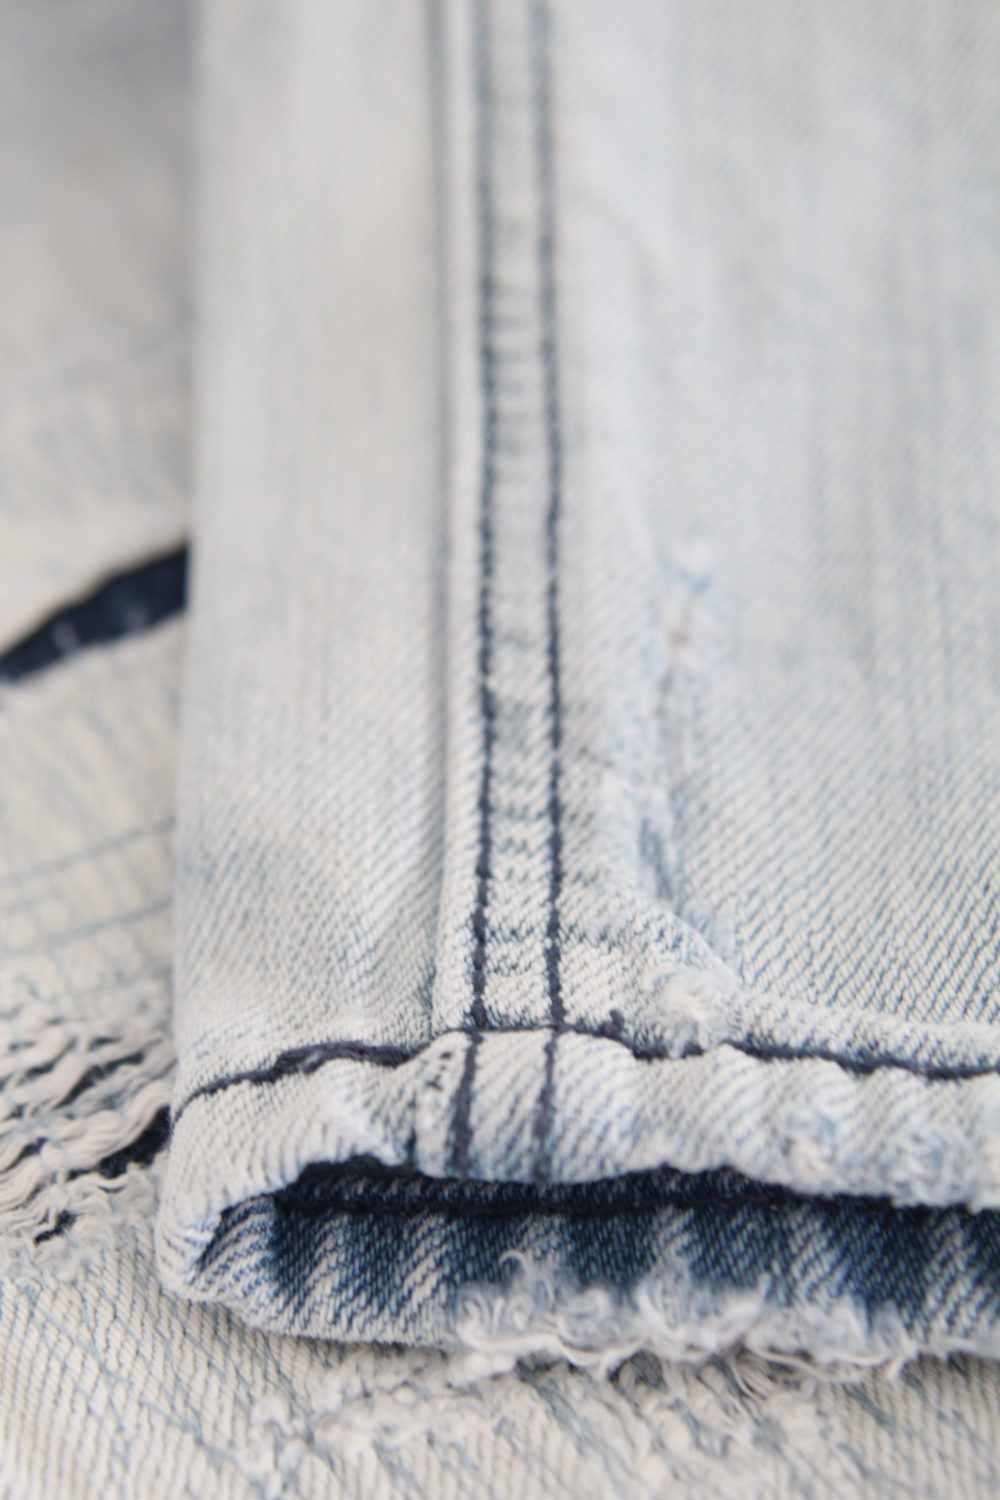 Pair of jeans featuring the felled seam on the inside seam